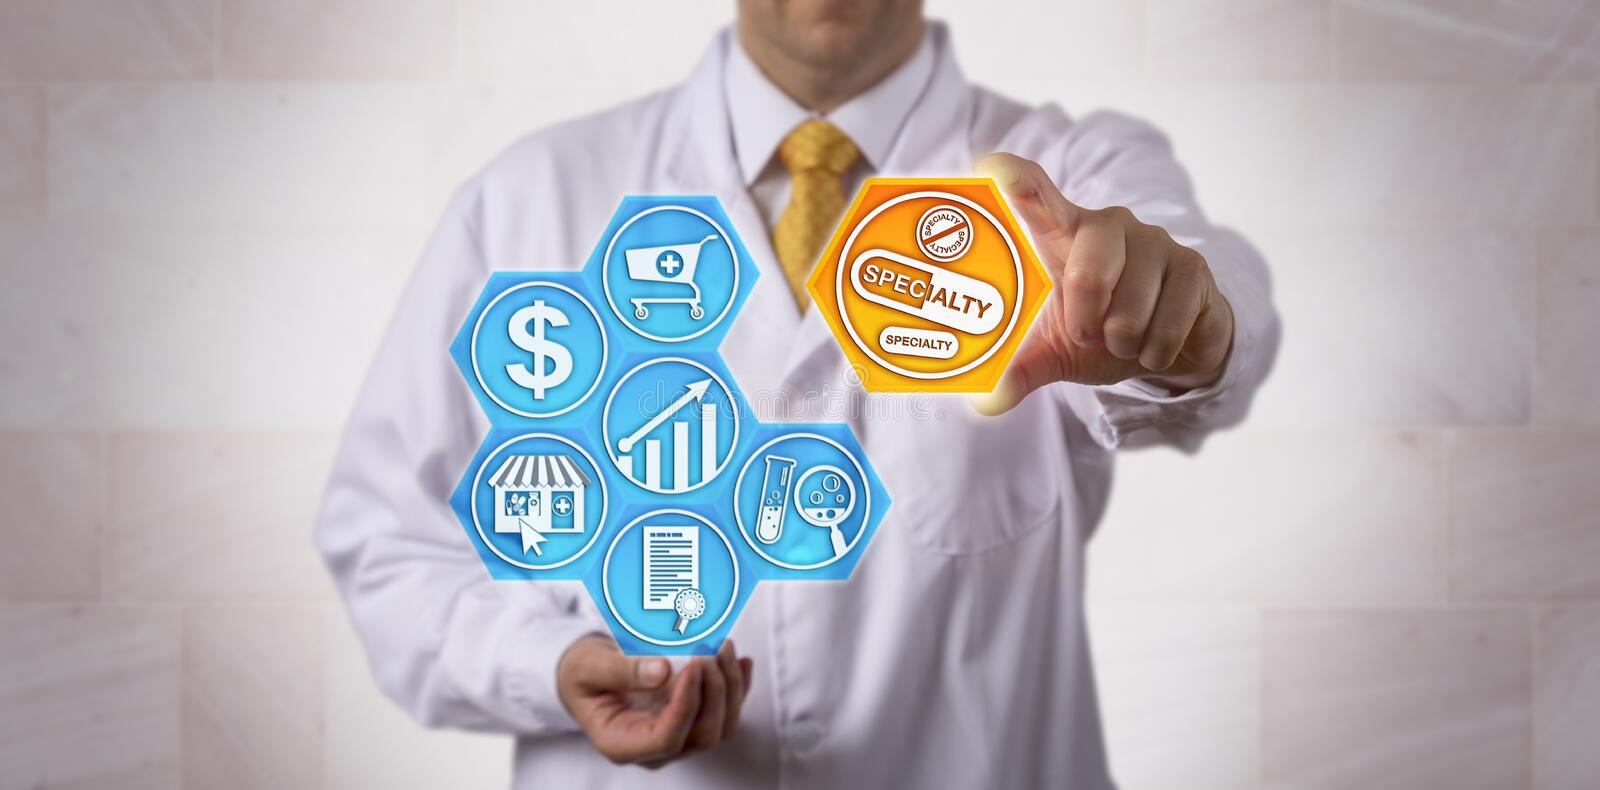 Pharmacist Presenting Specialty Drugs Online. Unrecognizable pharmacist is presenting specialty drugs to the online pharmacy marketplace. Pharmaceutical and stock image